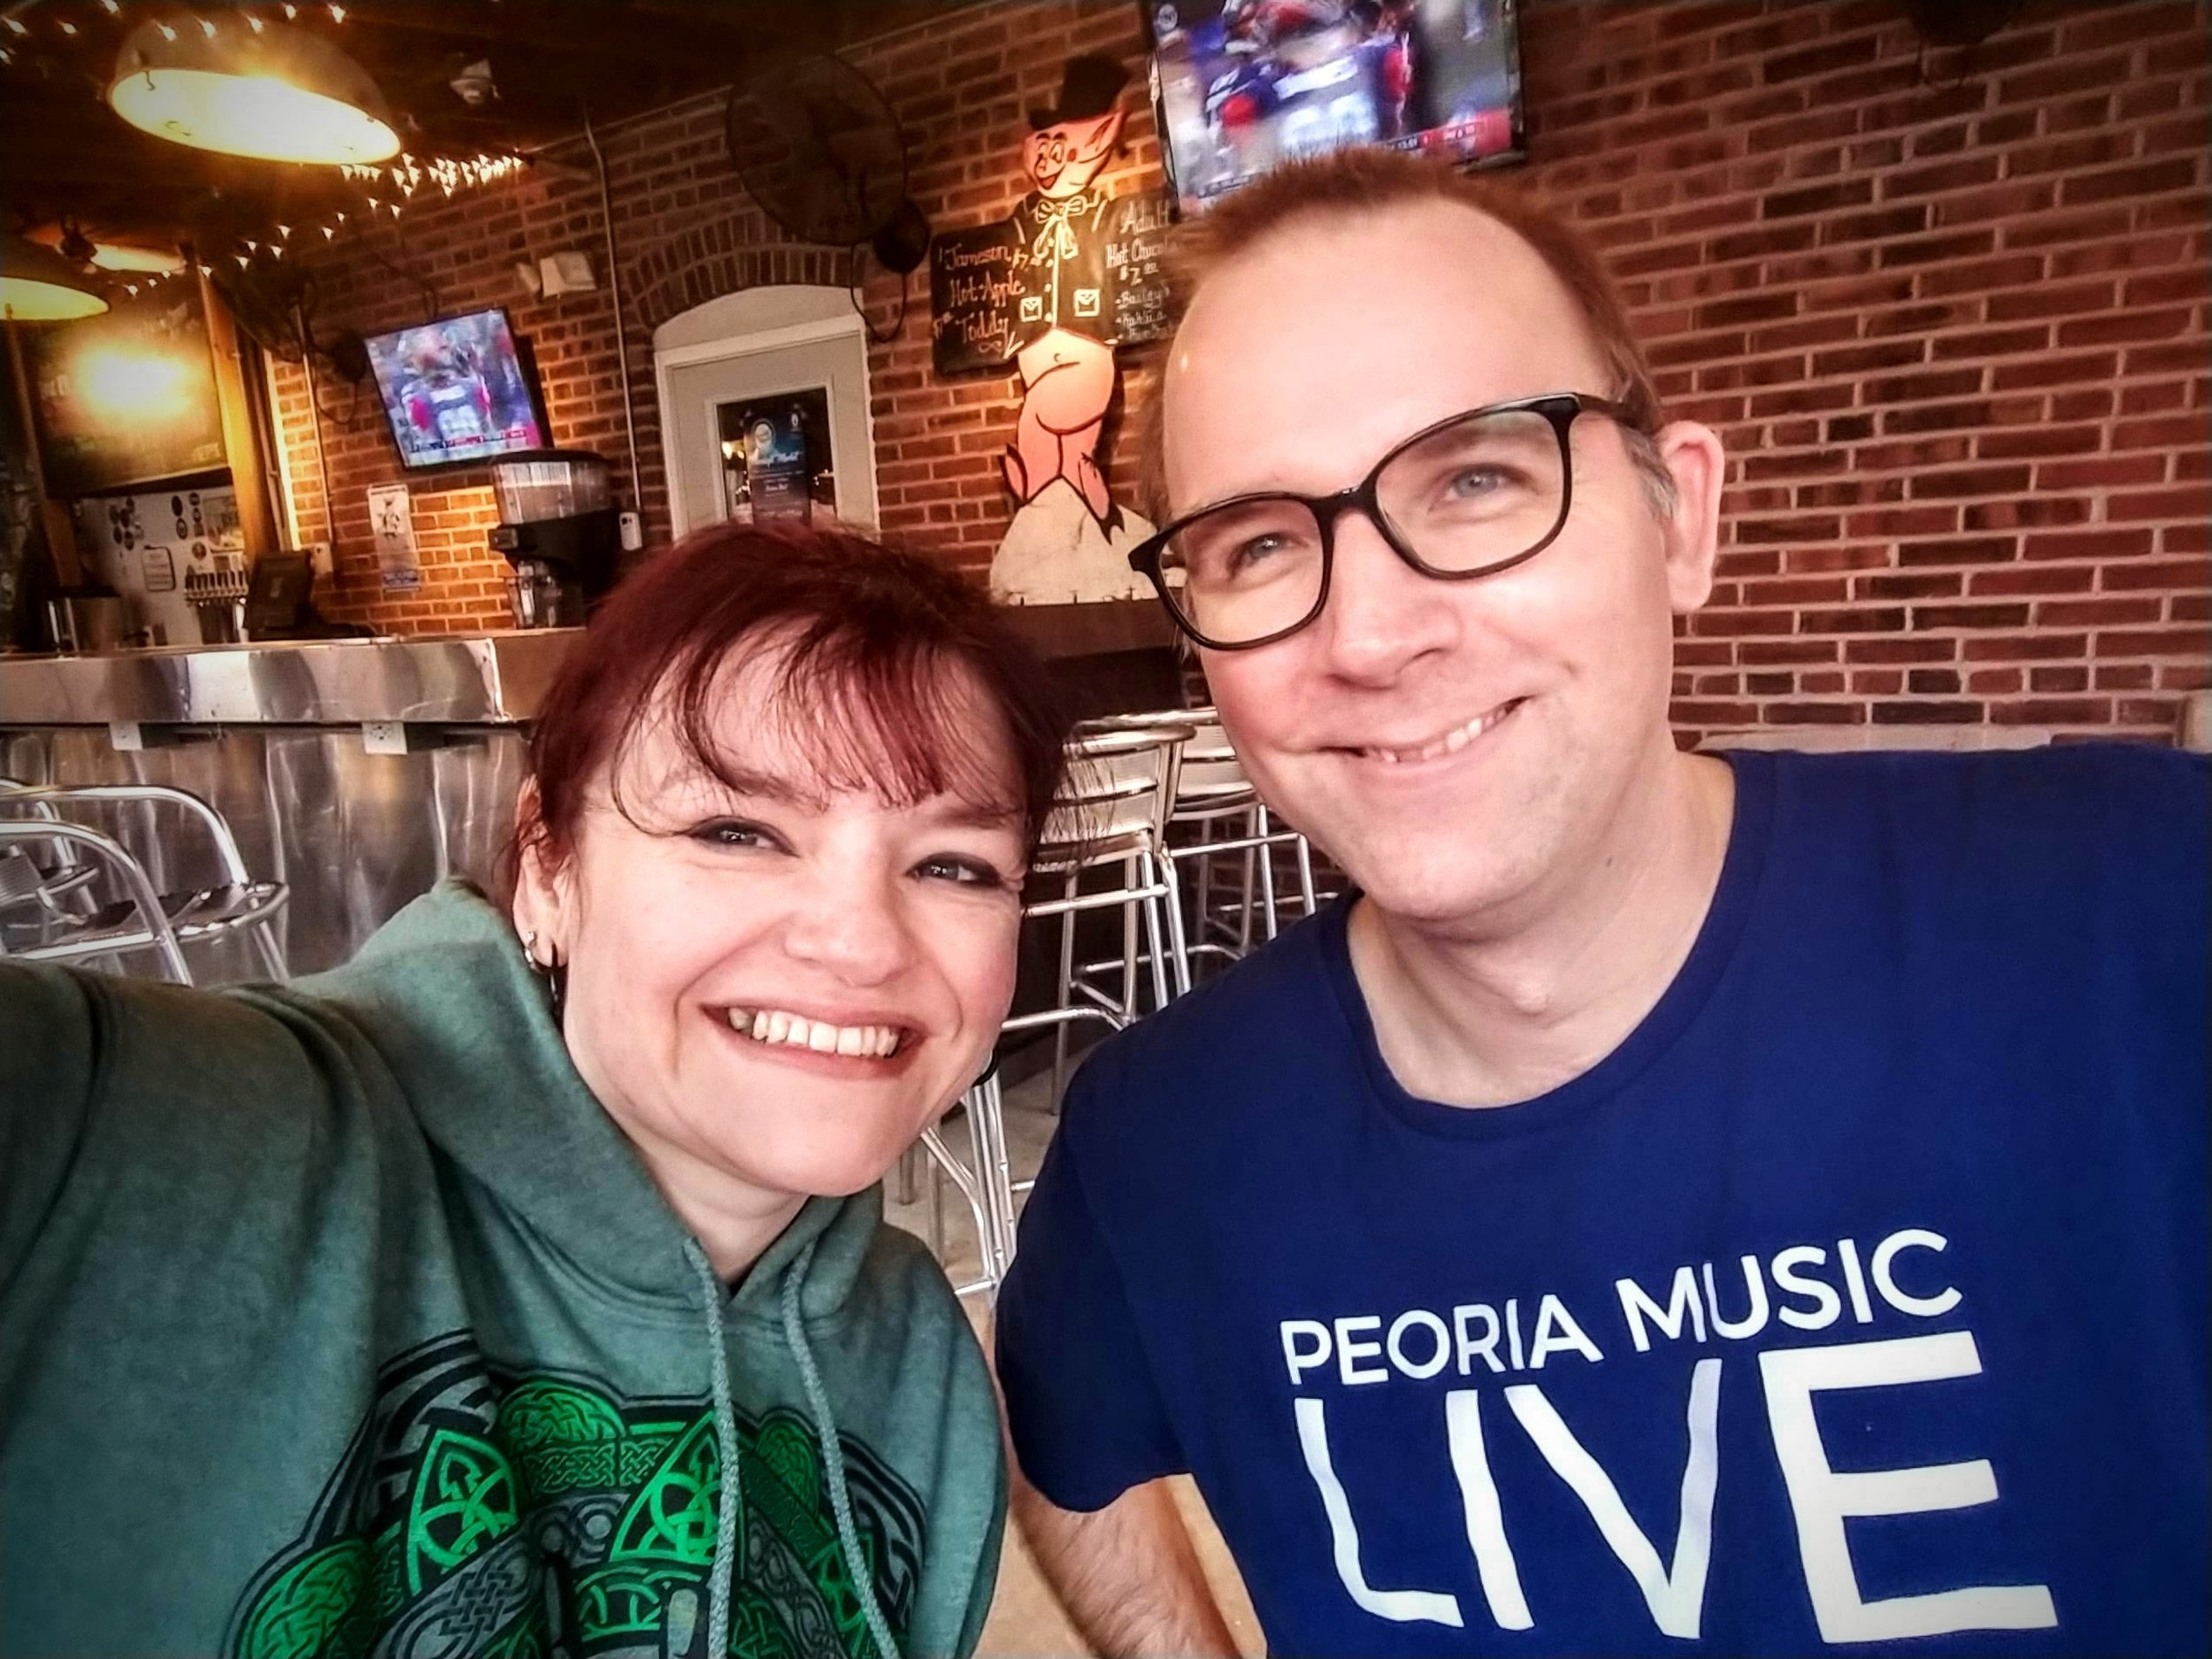 I love doing what I do through Peoria Music Live and bringing Mike along too. (He's been a huge help since he started joining me!)